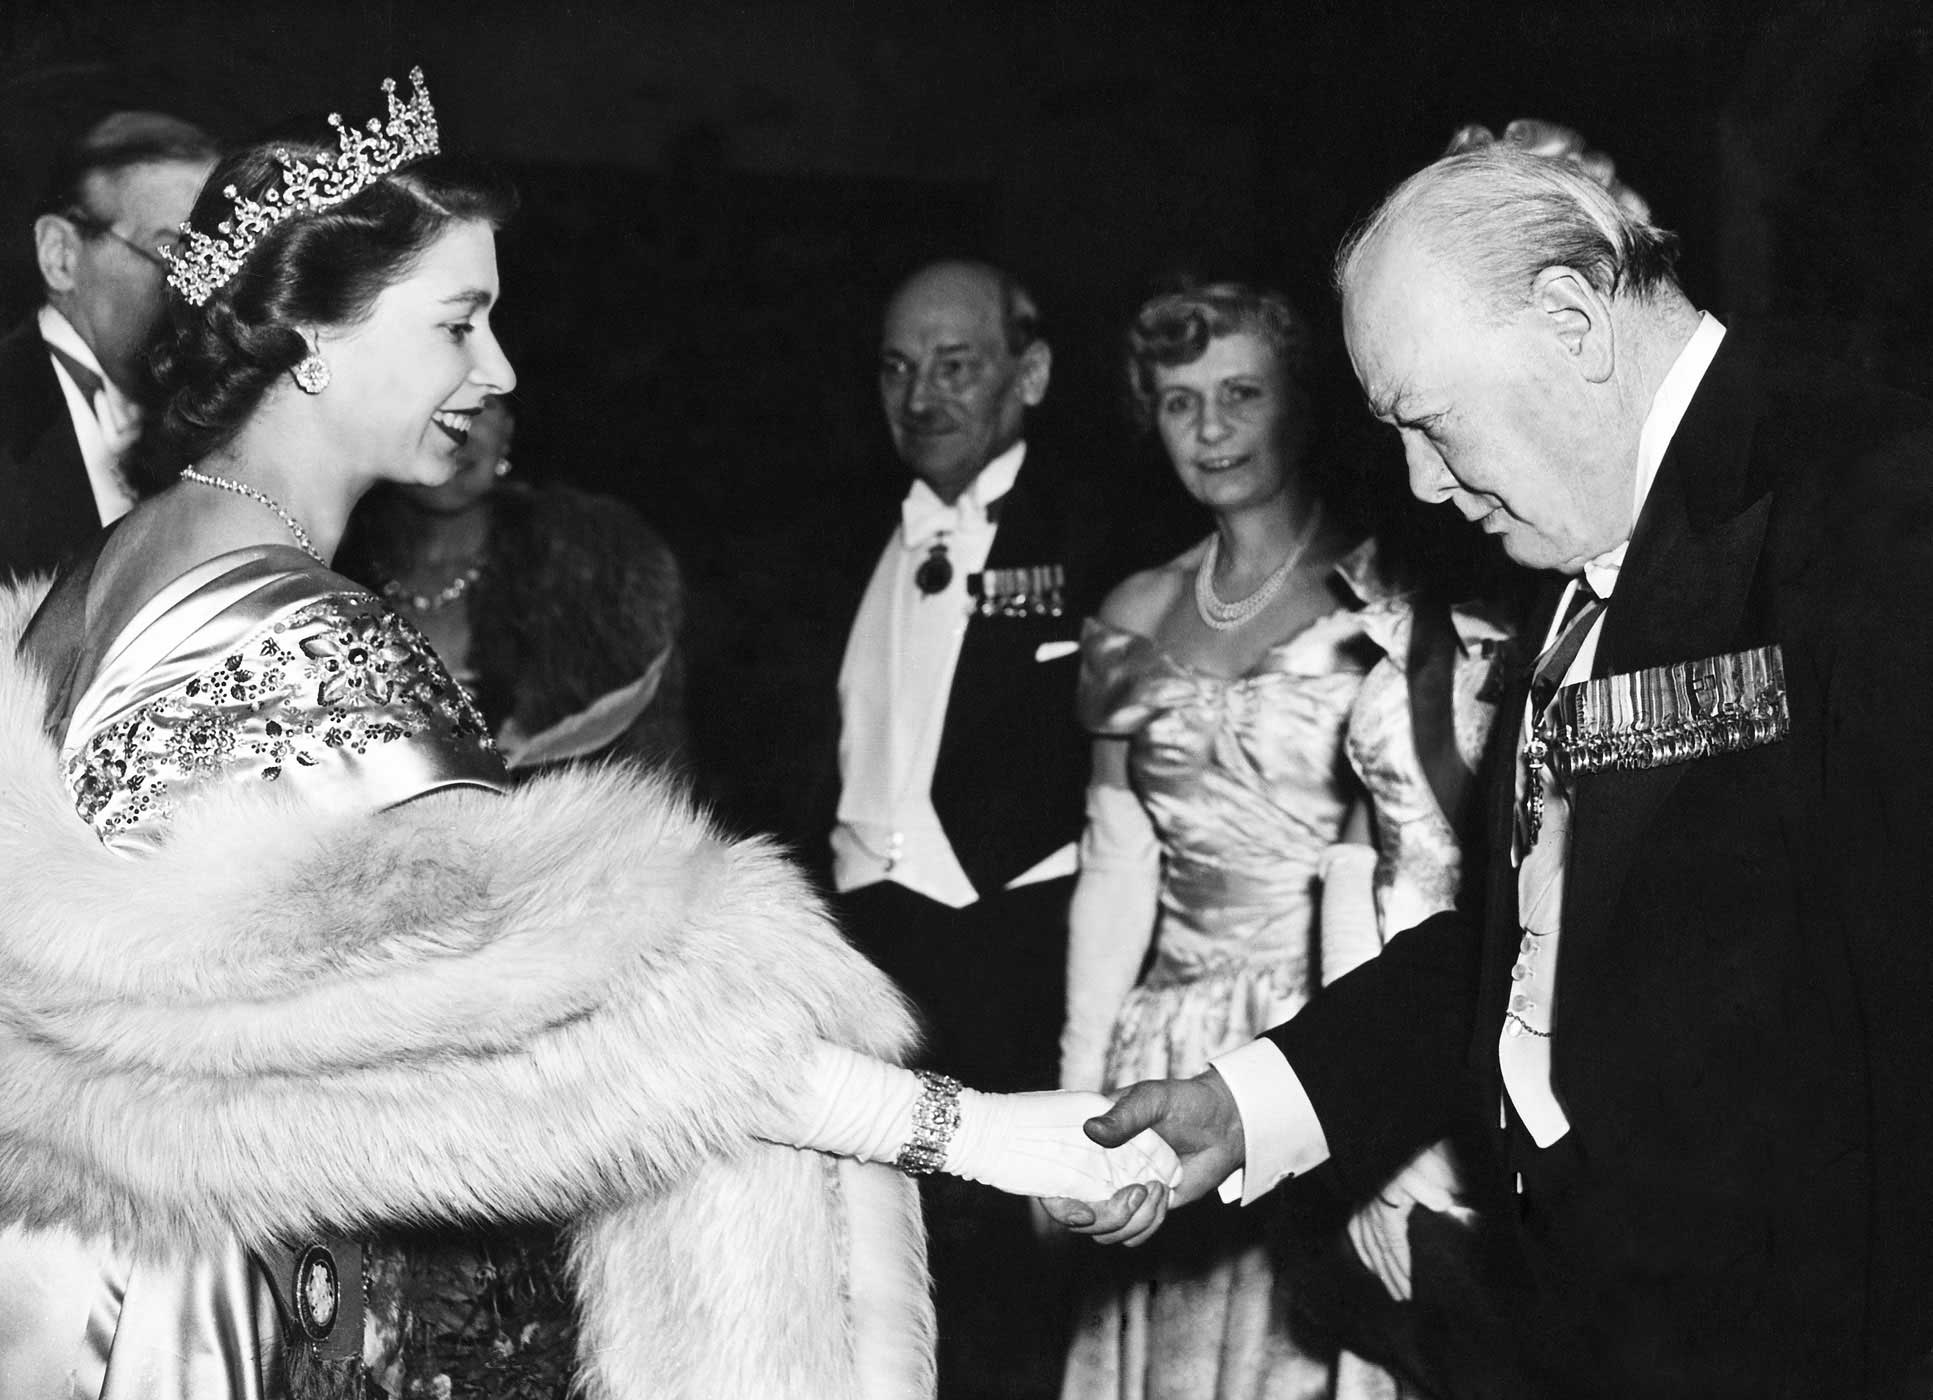 Princess Elizabeth greets Winston Churchill at Guildhall on March 23, 1950. Under her reign as Queen, Elizabeth has seen 13 Prime Ministers, including Churchill, from both the Tory and Labour parties.